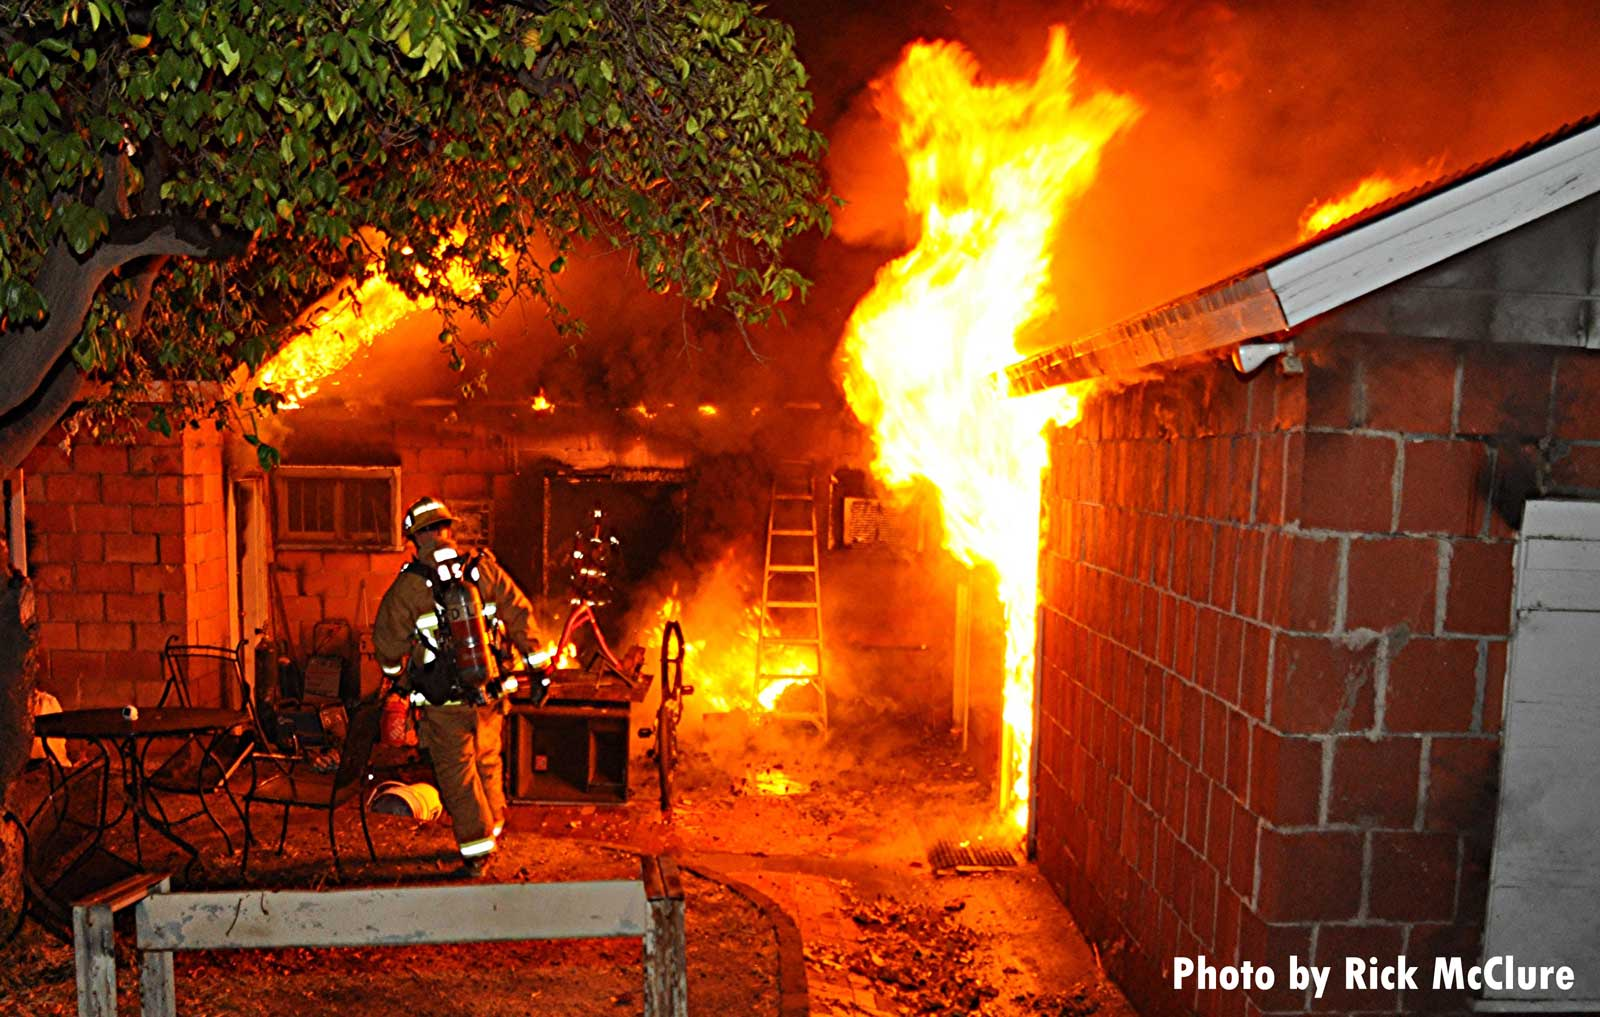 A firefighter at work as flames shoot from a structure